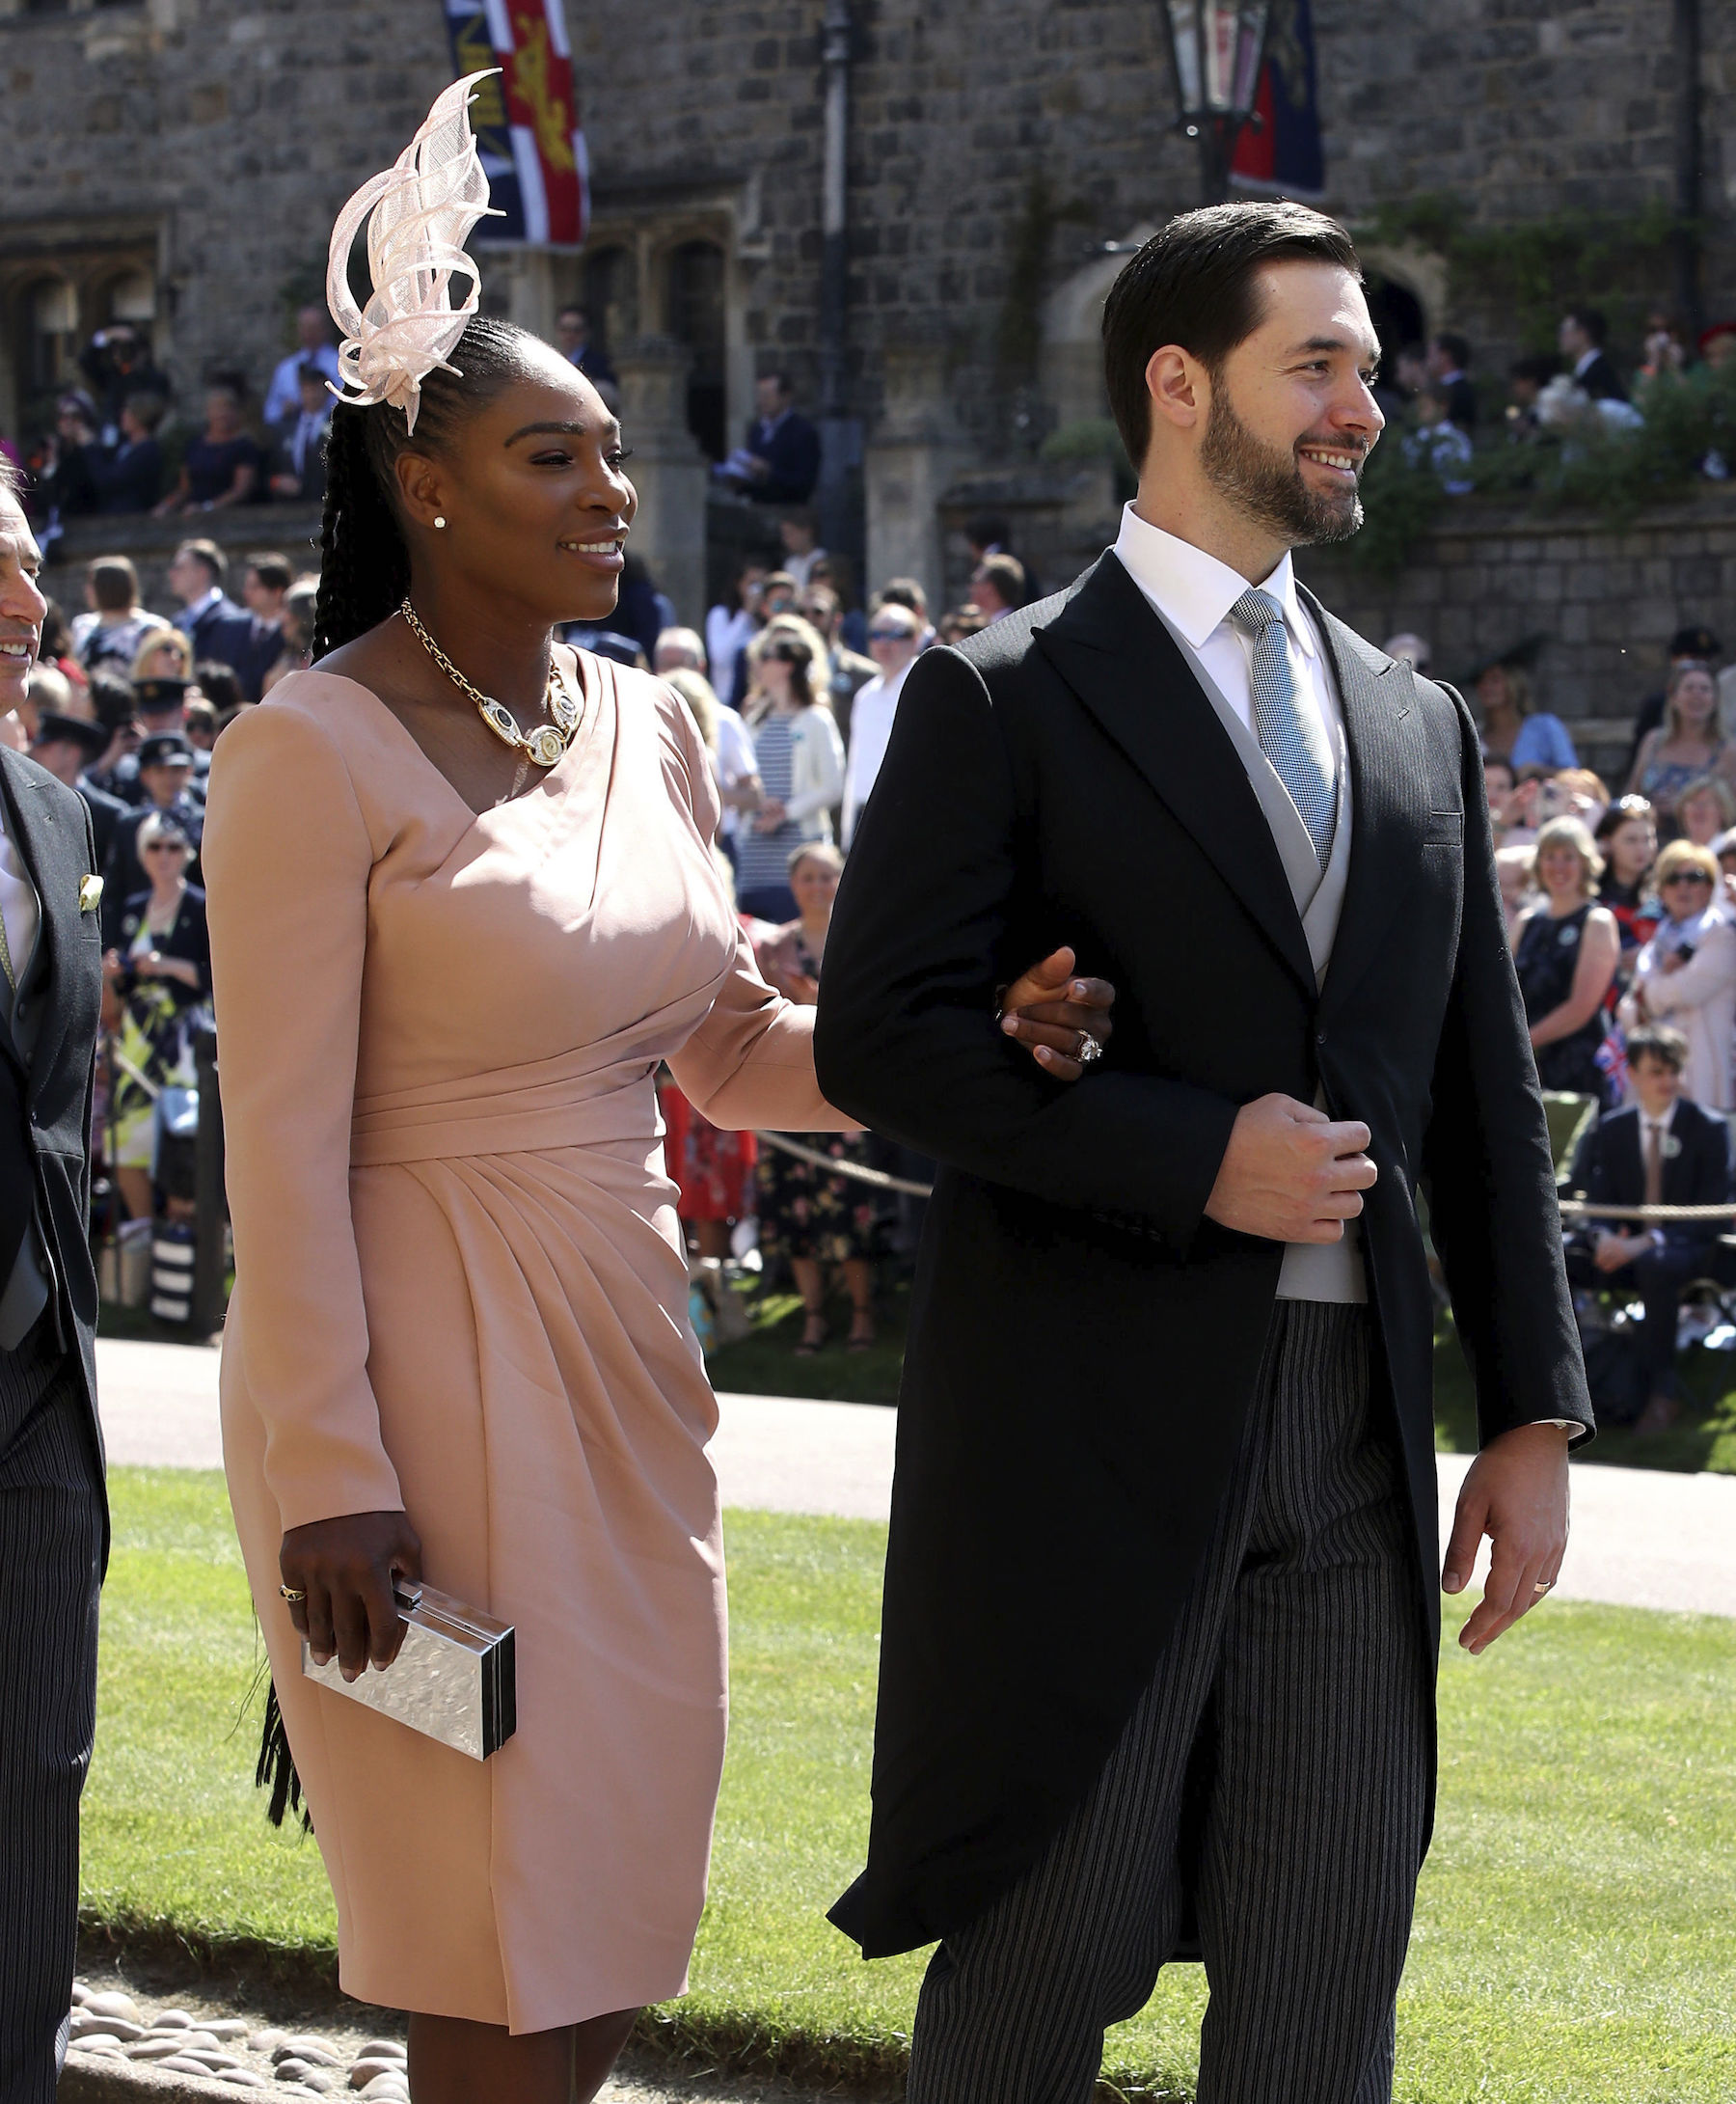 "<div class=""meta image-caption""><div class=""origin-logo origin-image ap""><span>AP</span></div><span class=""caption-text"">Serena Williams and Alexis Ohanian arrive at St George's Chapel at Windsor Castle for the wedding of Meghan Markle and Prince Harry. (Chris Radburn/PA Wire)</span></div>"